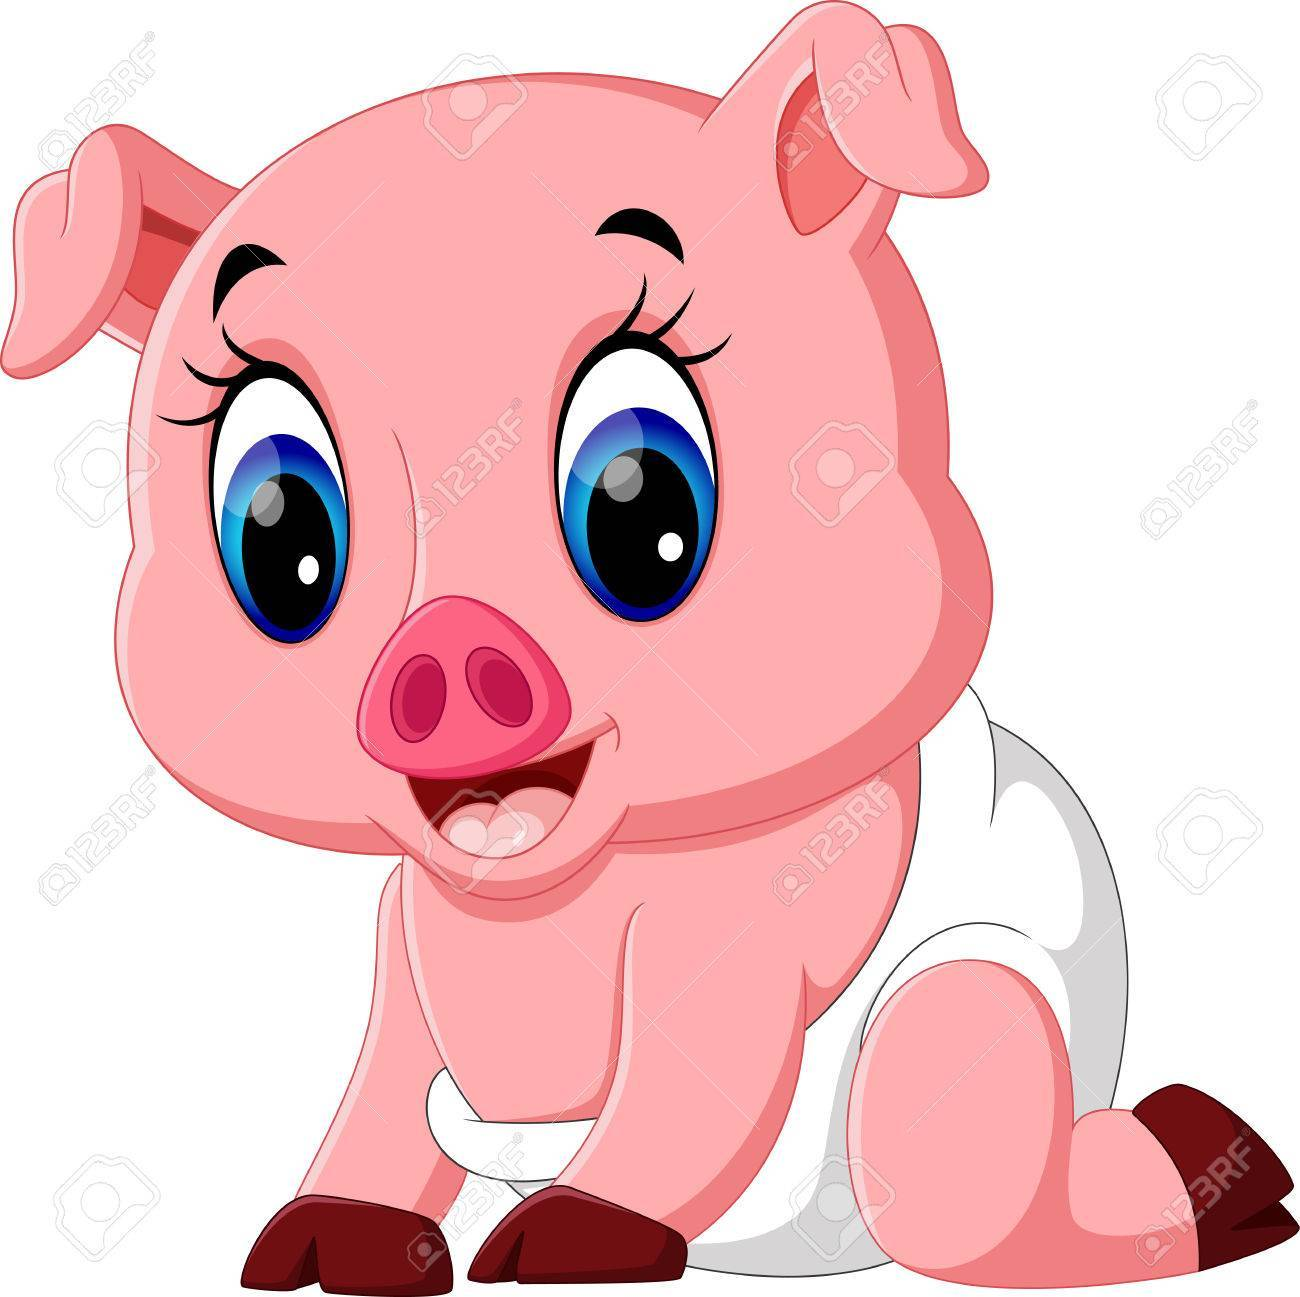 Cute baby pigs clipart 8 » Clipart Portal.